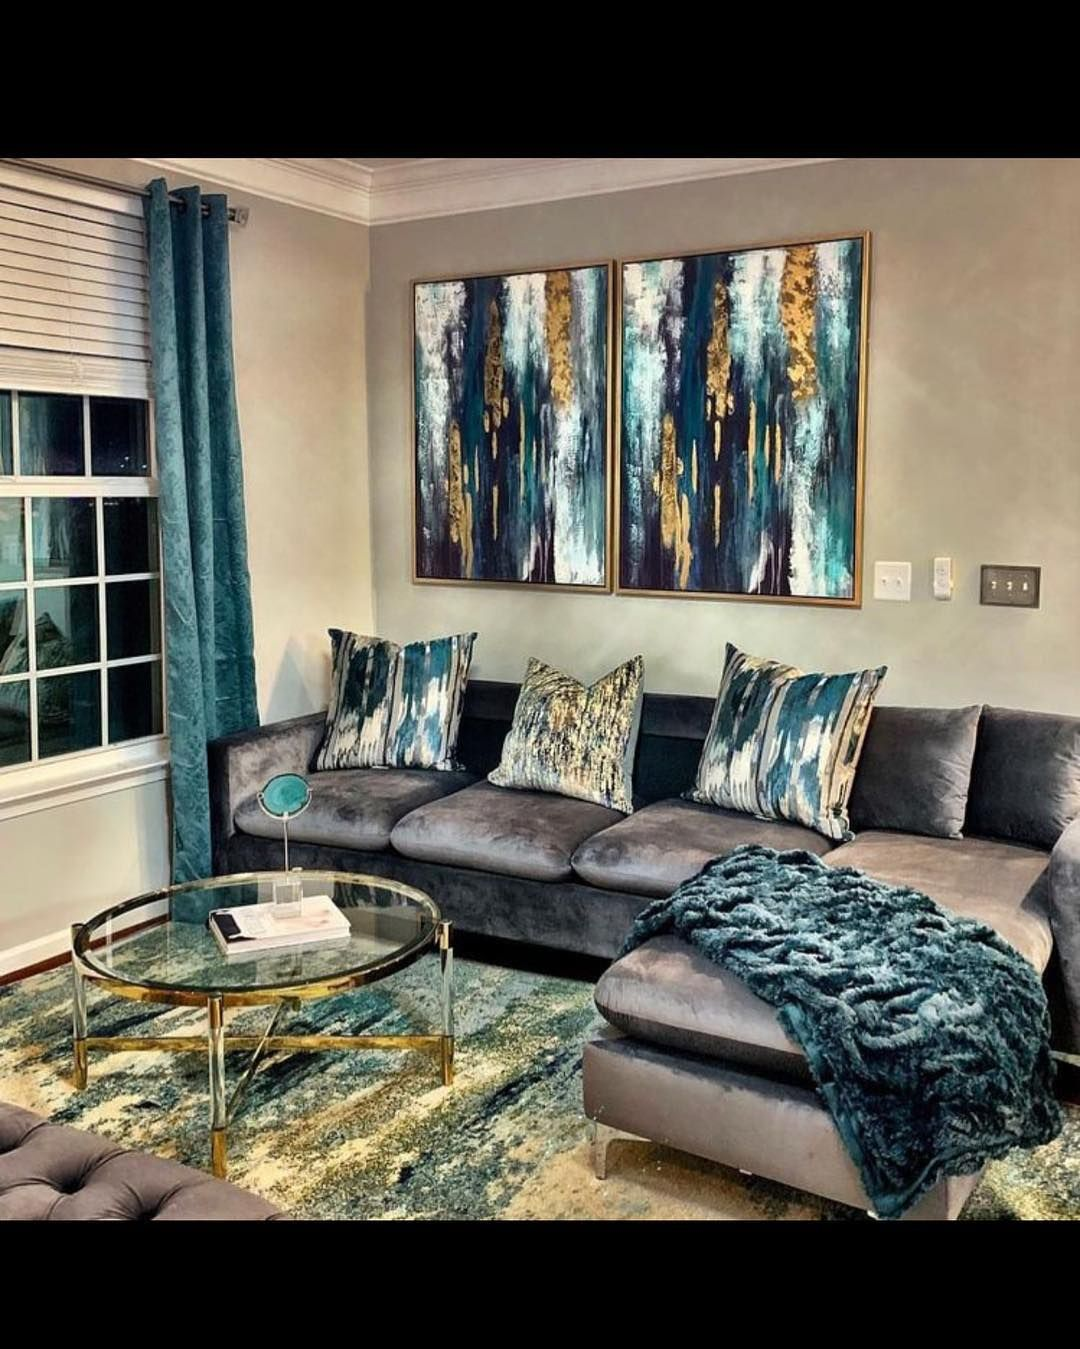 Decor Inspiration By Ty On Instagram Loving The Teal Gray And